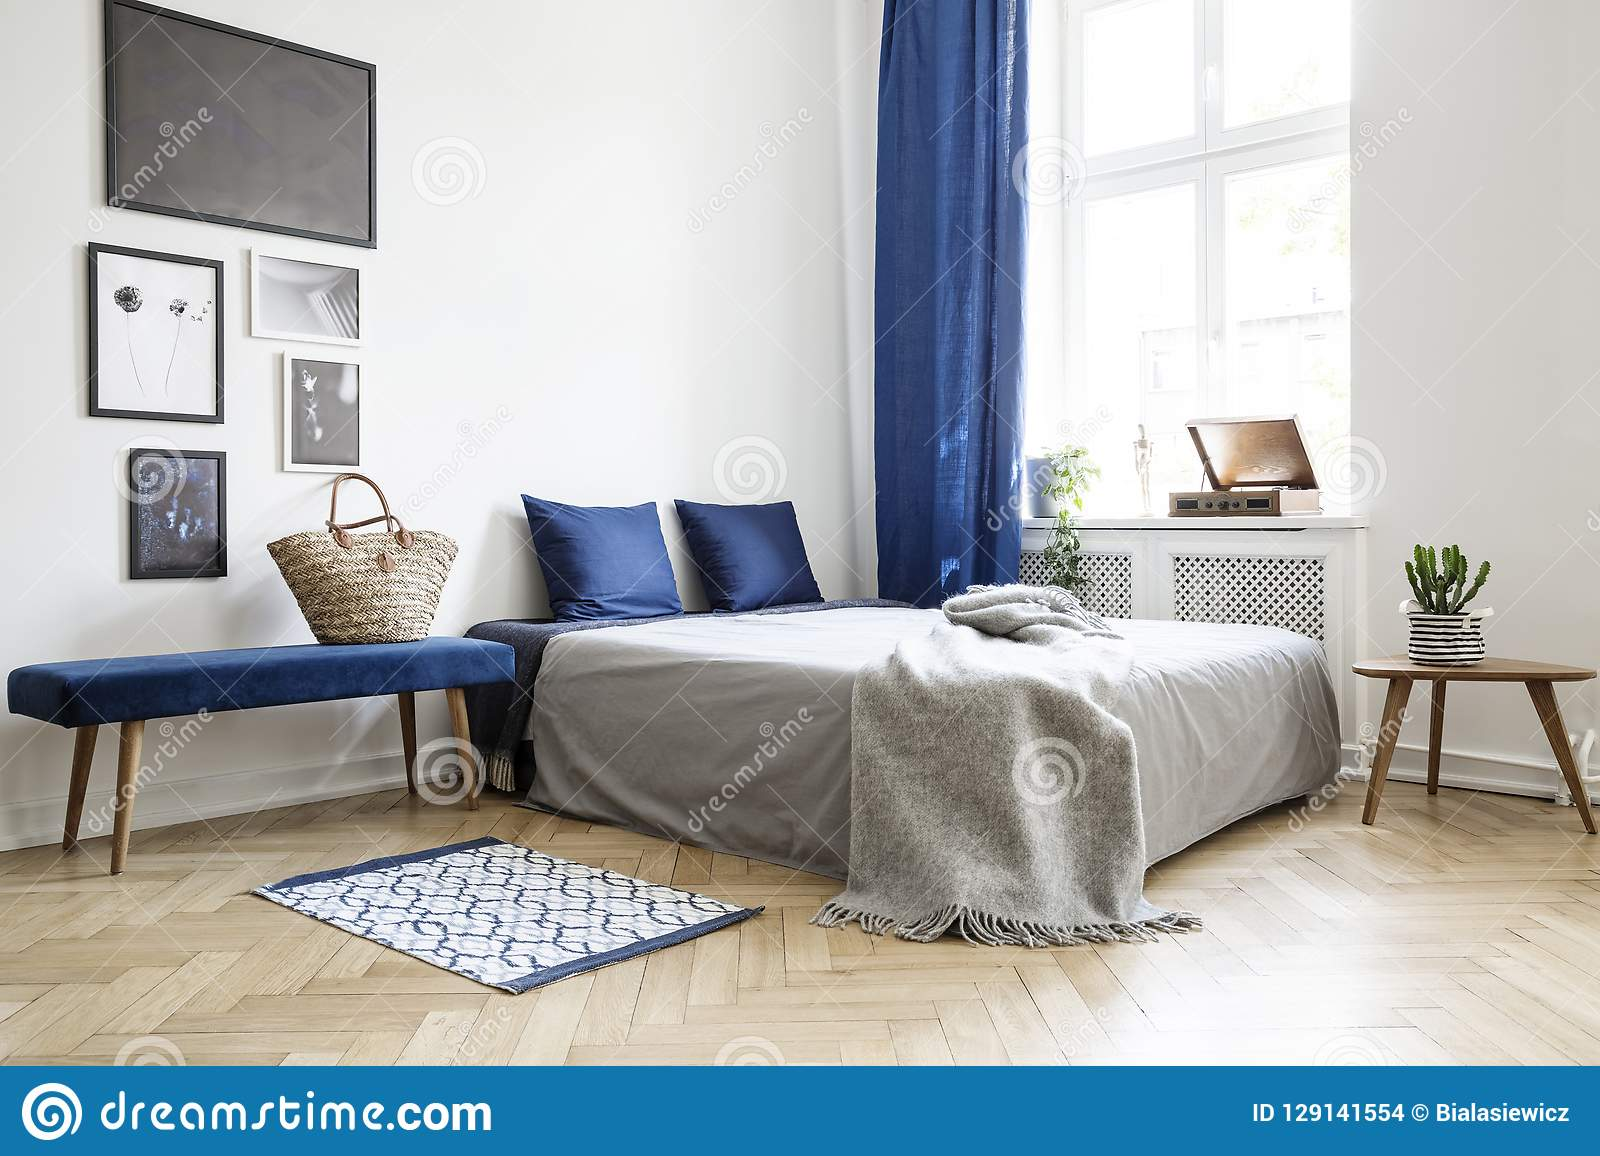 Bedroom Design In Modern Apartment. Bed With Dark Blue ...